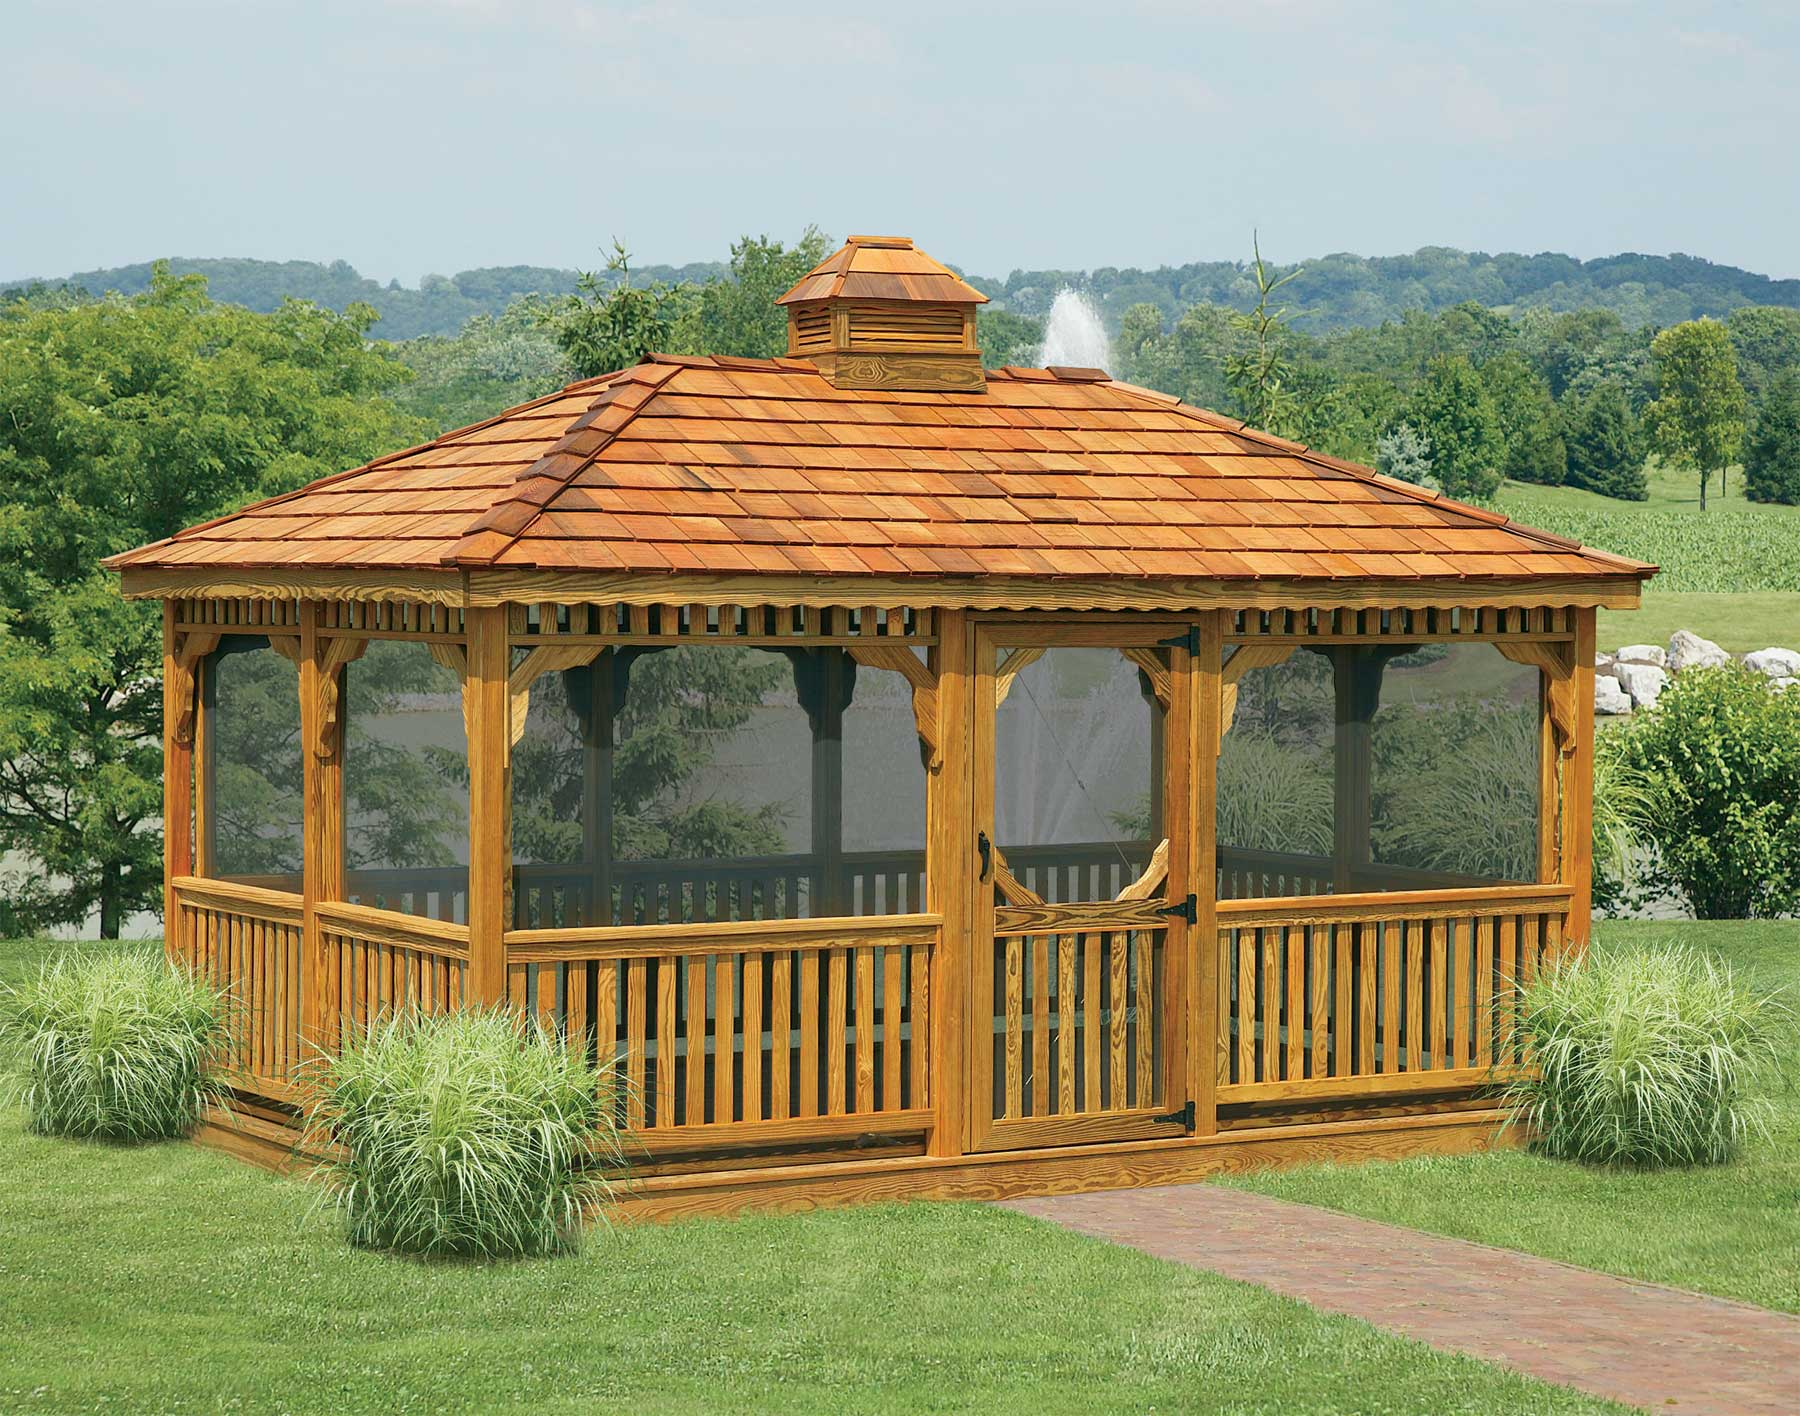 How to build a rectangular gazebo step by step guide and models - Build rectangular gazebo guide models ...